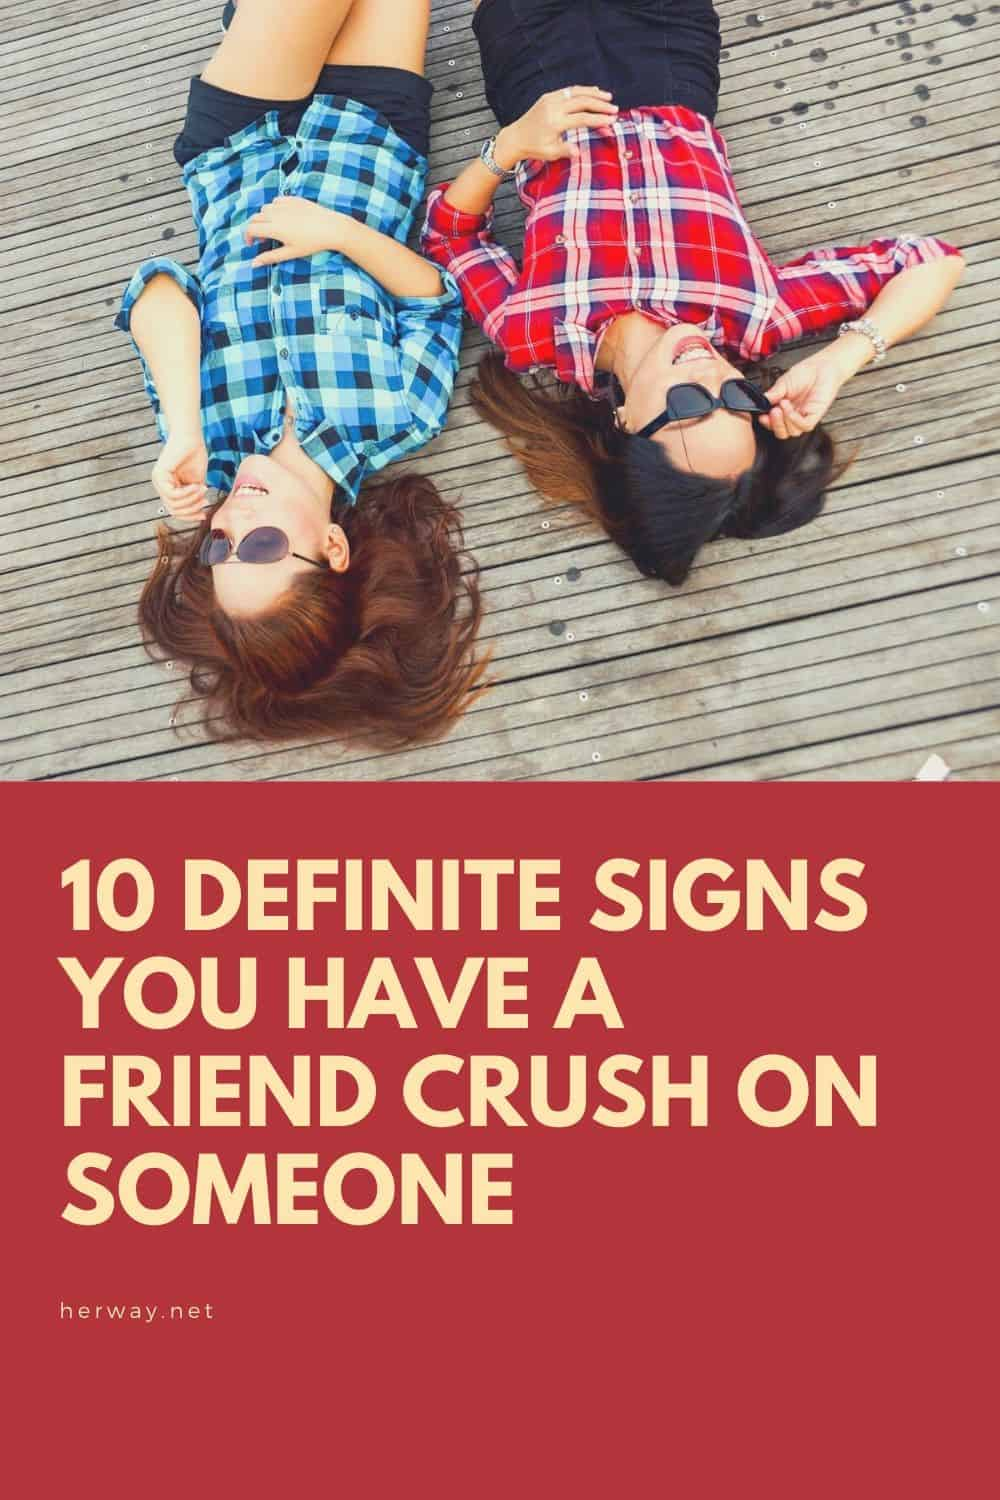 10 Definite Signs You Have A Friend Crush On Someone